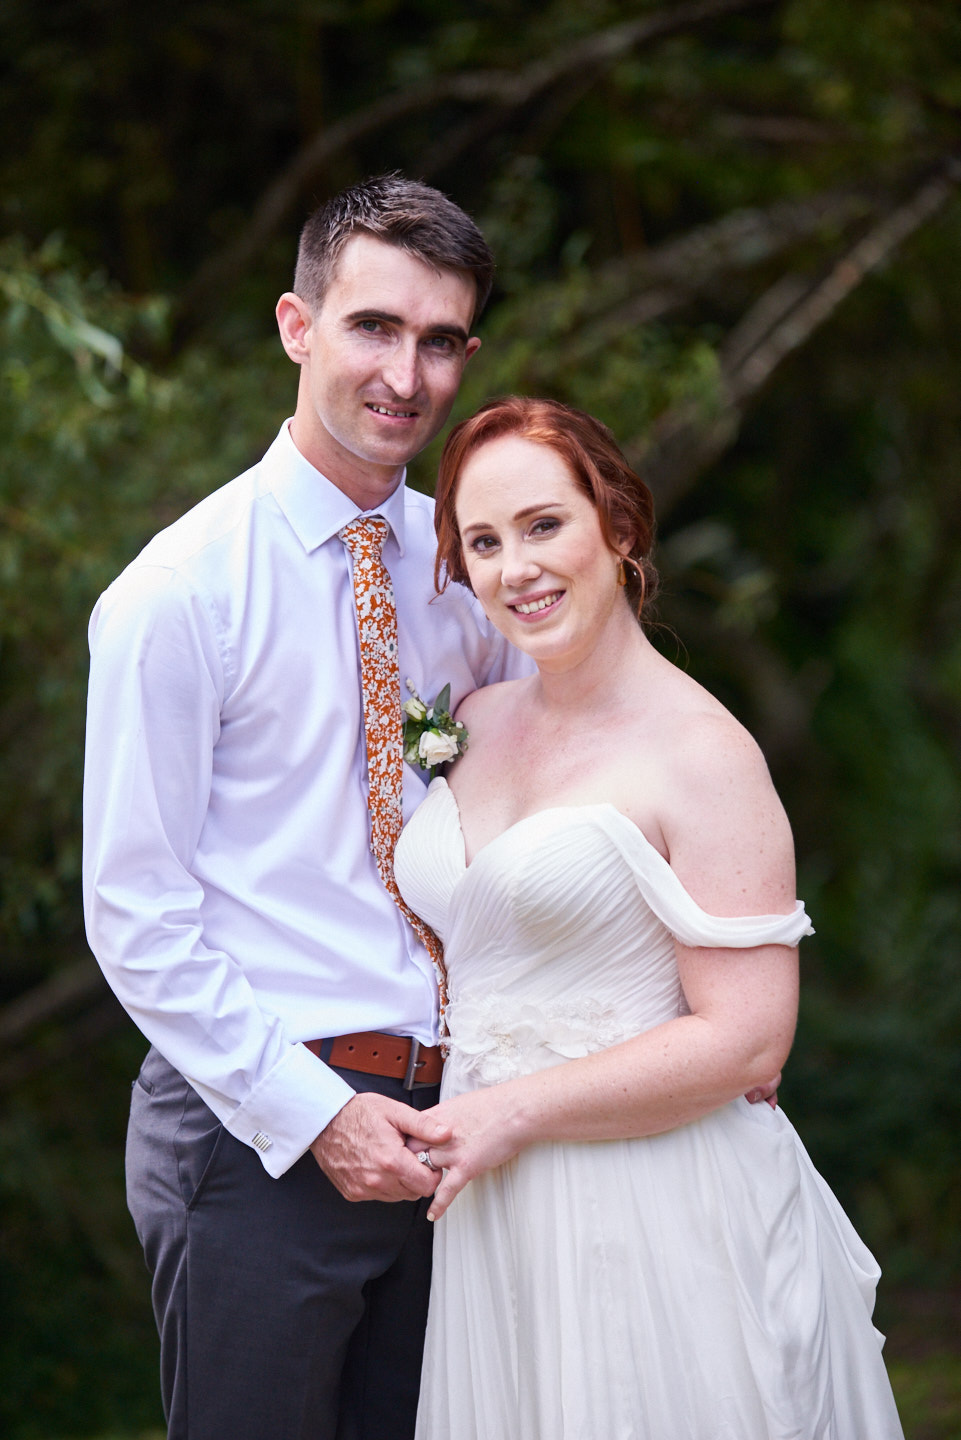 Becks Wilkinson and Andy Beard's wedding in Welcome Bay, Tauranga